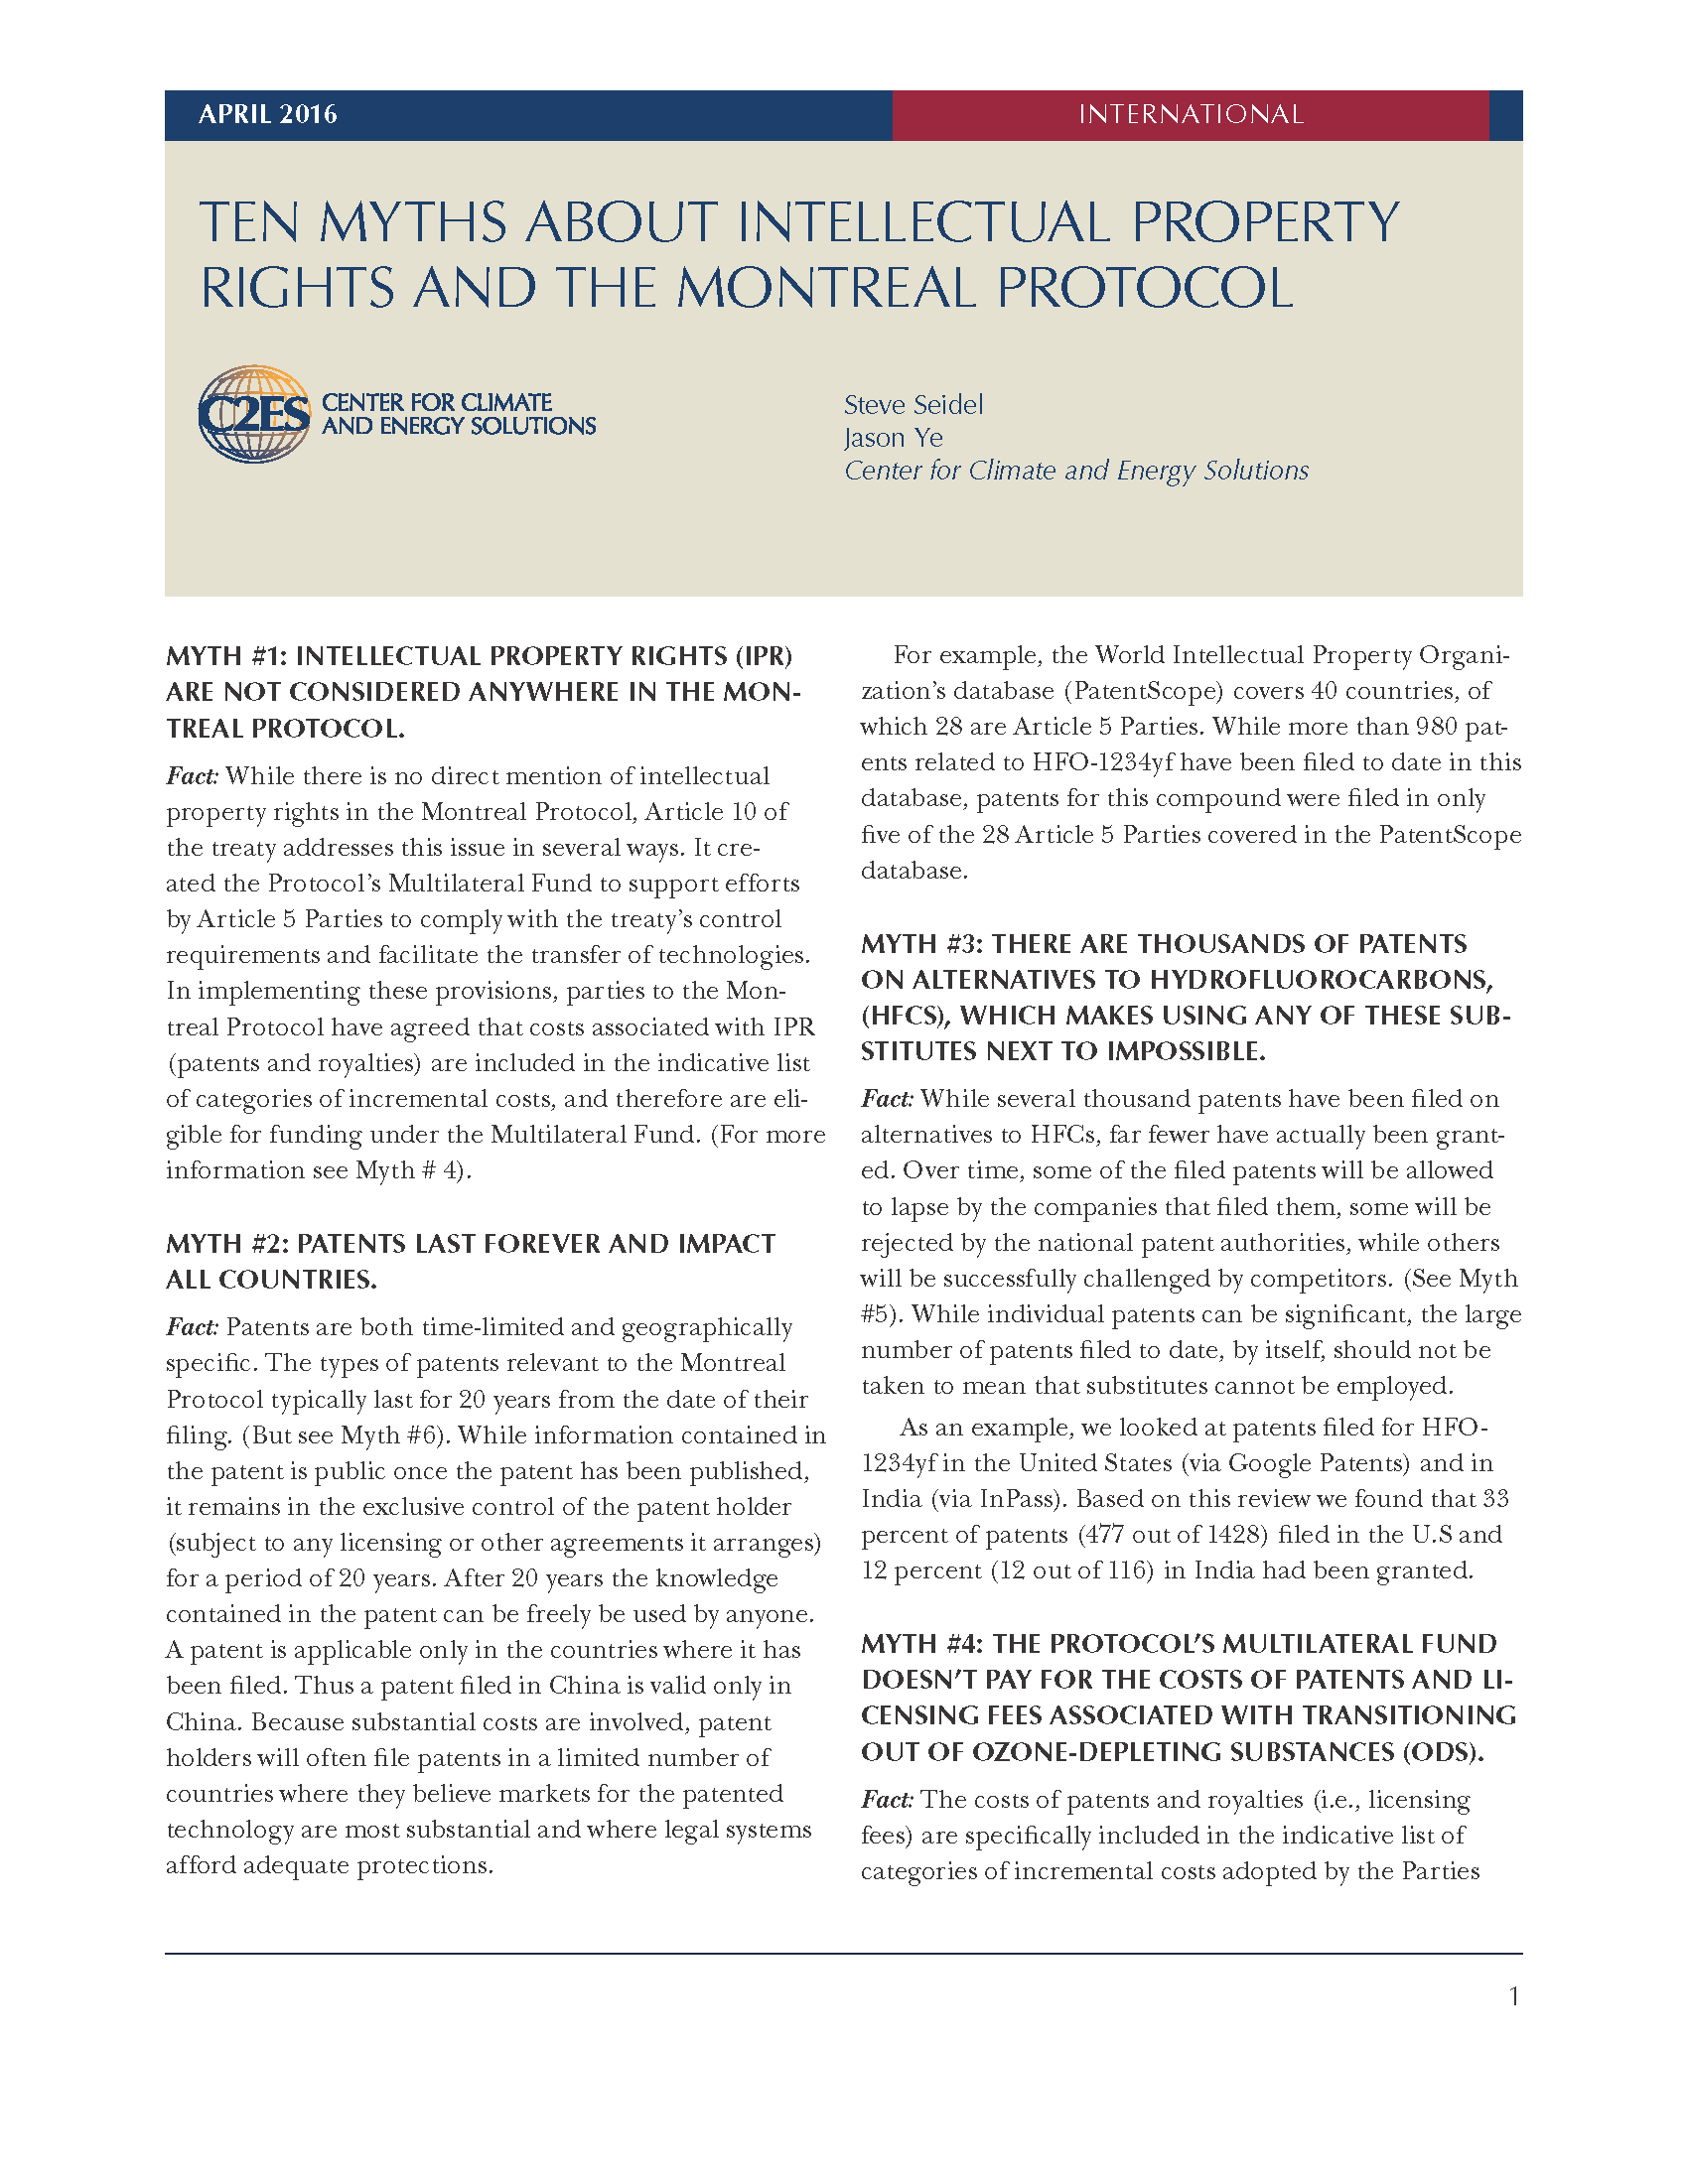 Ten Myths About Intellectual Property Rights Montreal Protocol Cover